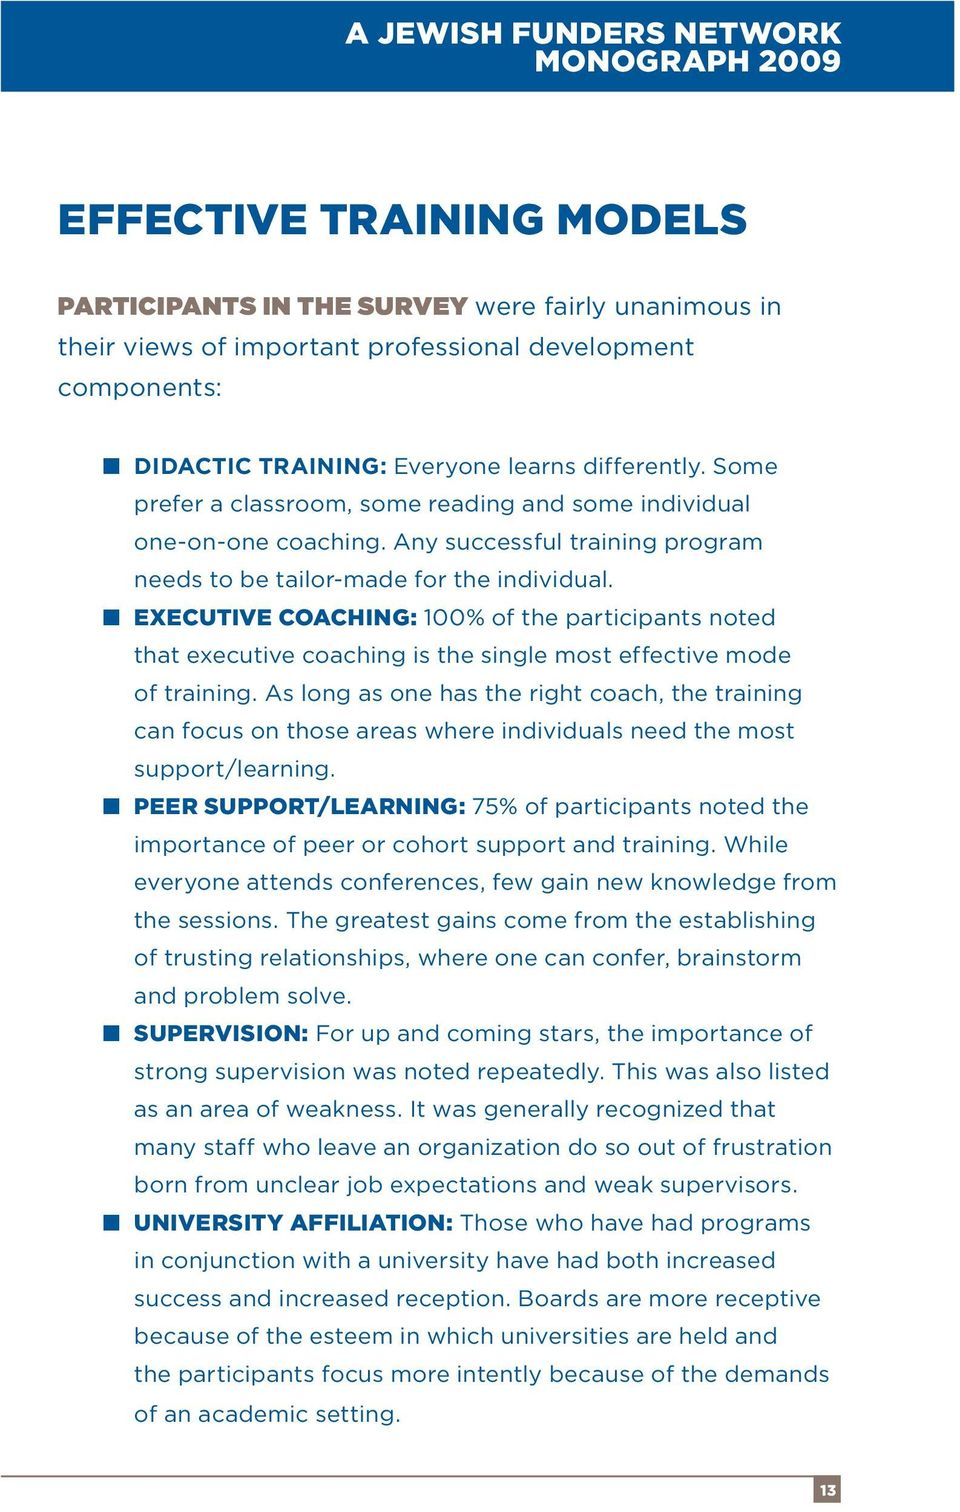 EXECUTIVE COACHING: 100% of the participants noted that executive coaching is the single most effective mode of training.